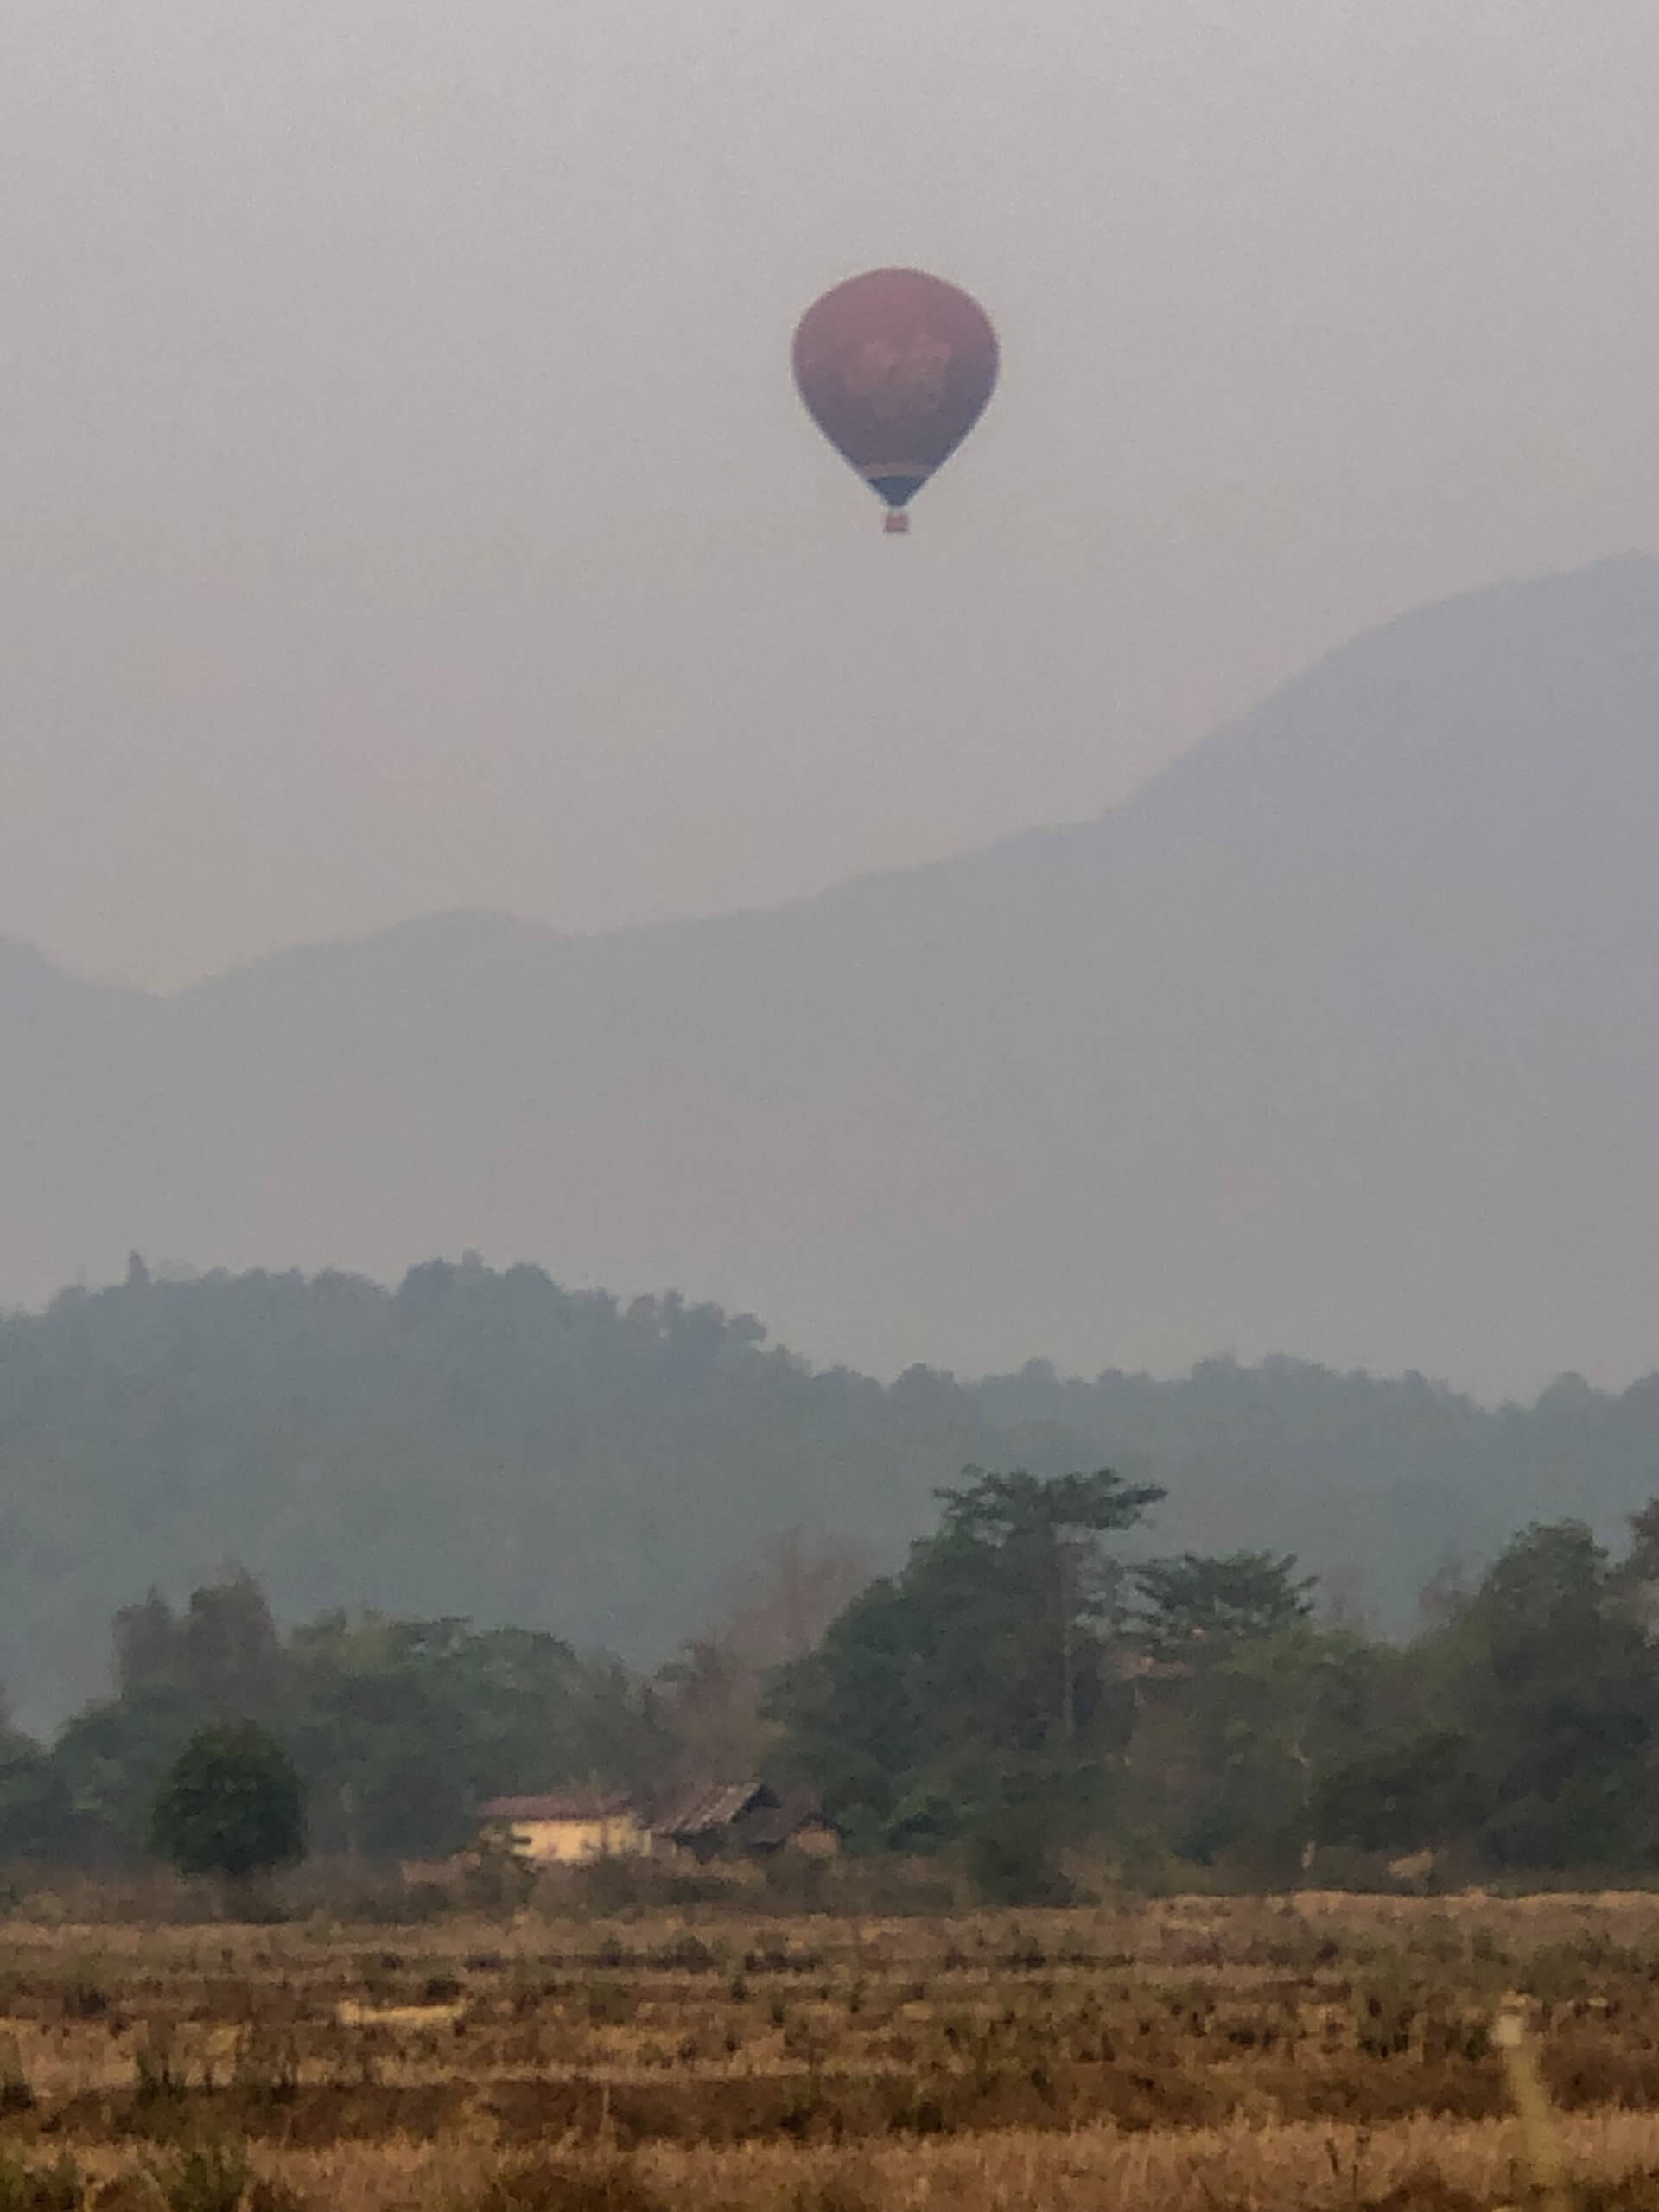 Hot air balloons over Vang vieng in laos